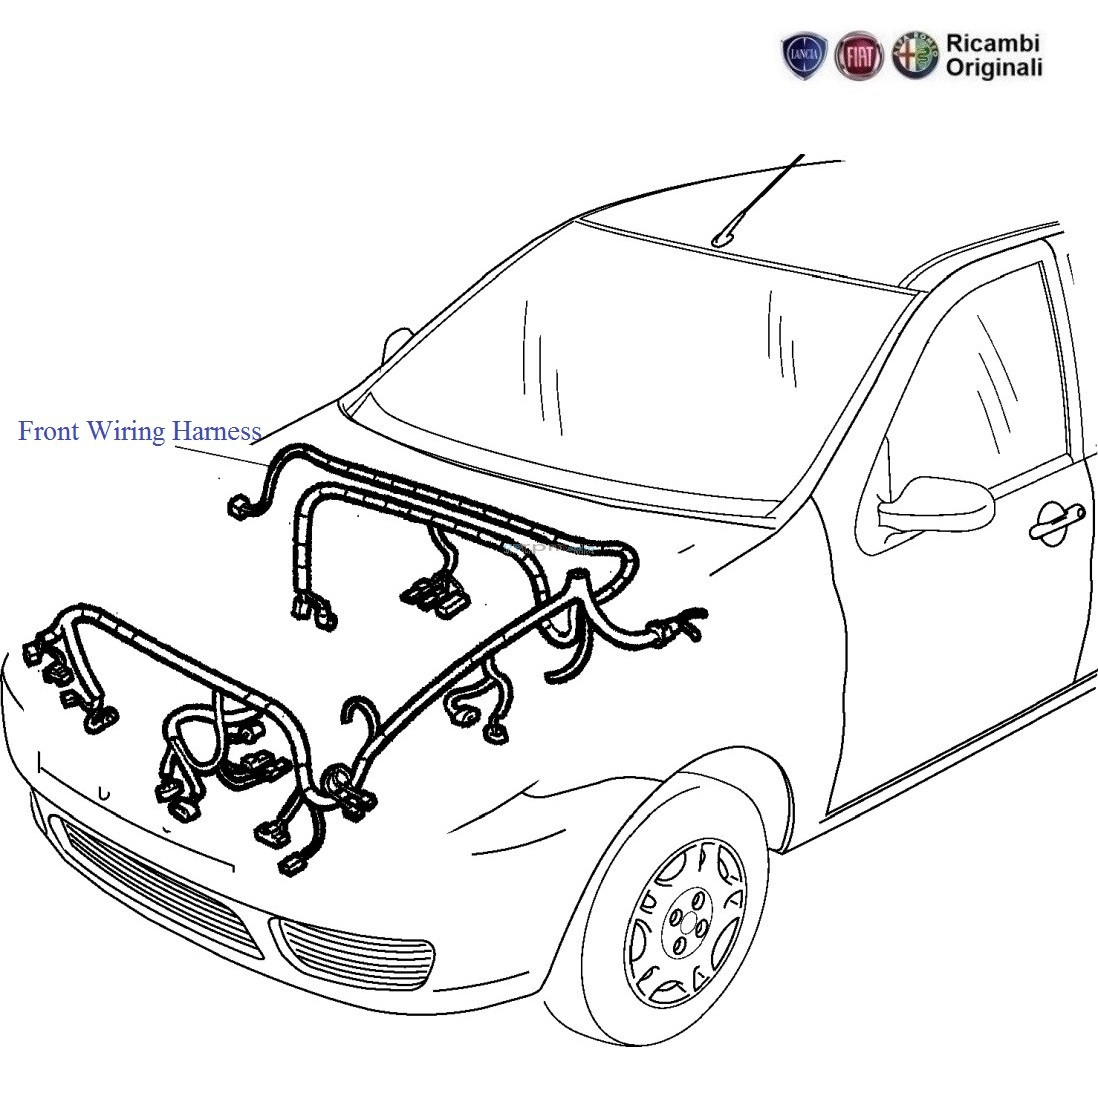 Fiat Palio Stile 1 1 Petrol Front Wiring Harness